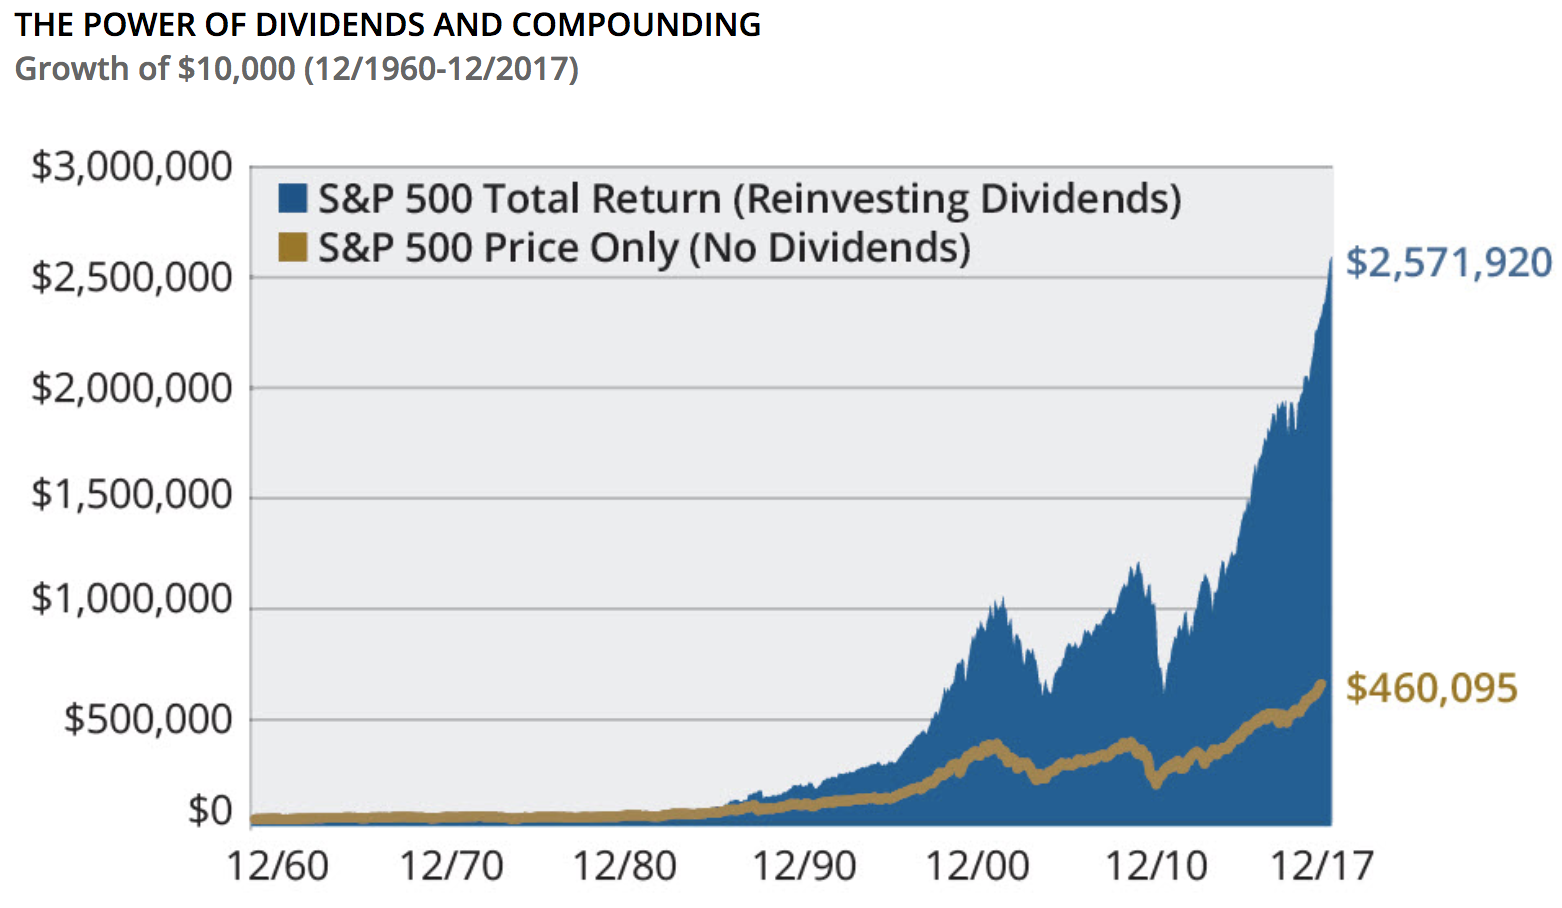 Dividends & Compounding